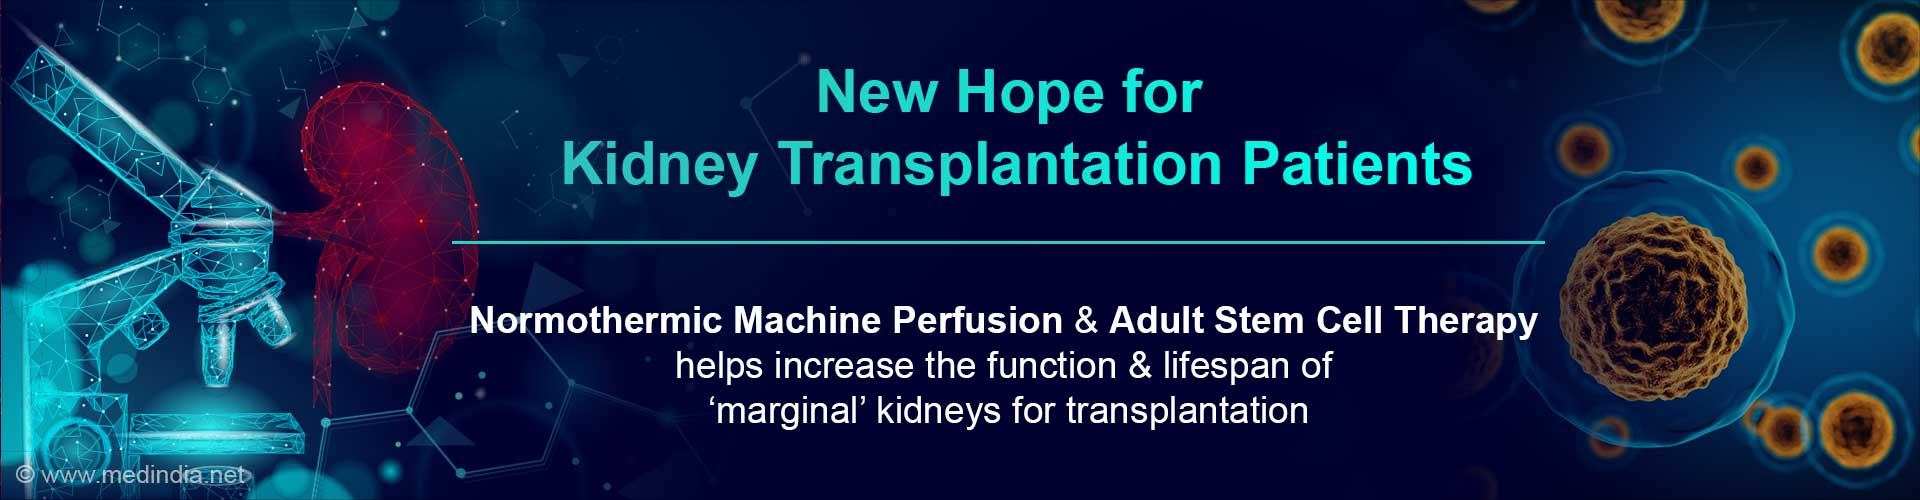 Kidney Transplant Patients Provided With New Hope - Use of Normothermic Machine Perfusion With Stem Cells